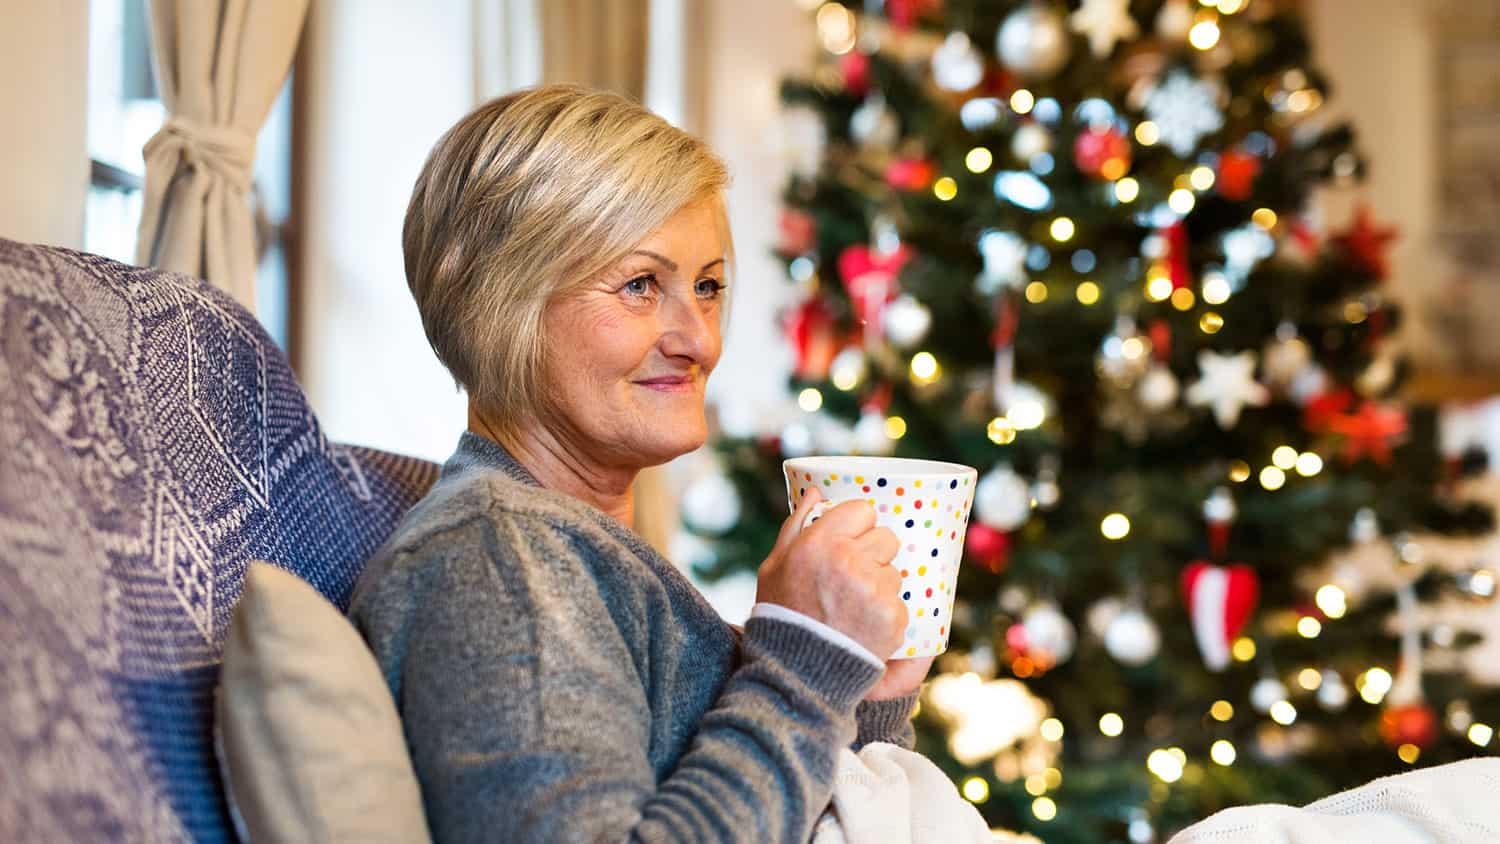 over 60 holidays for singles